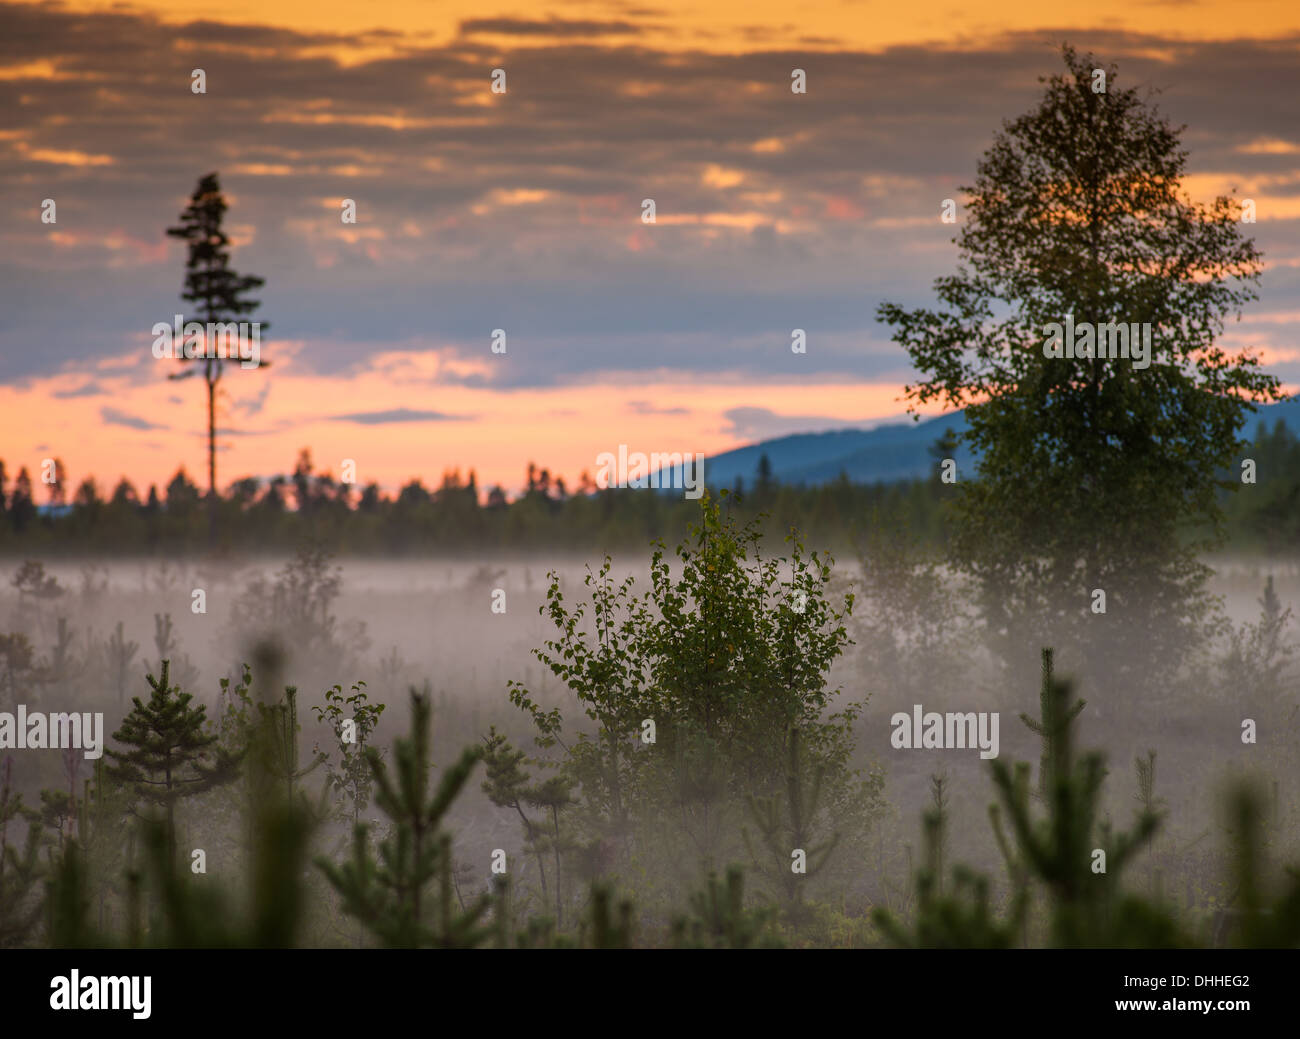 Mist and trees at sunset, Storforsen, Lapland, Sweden - Stock Image